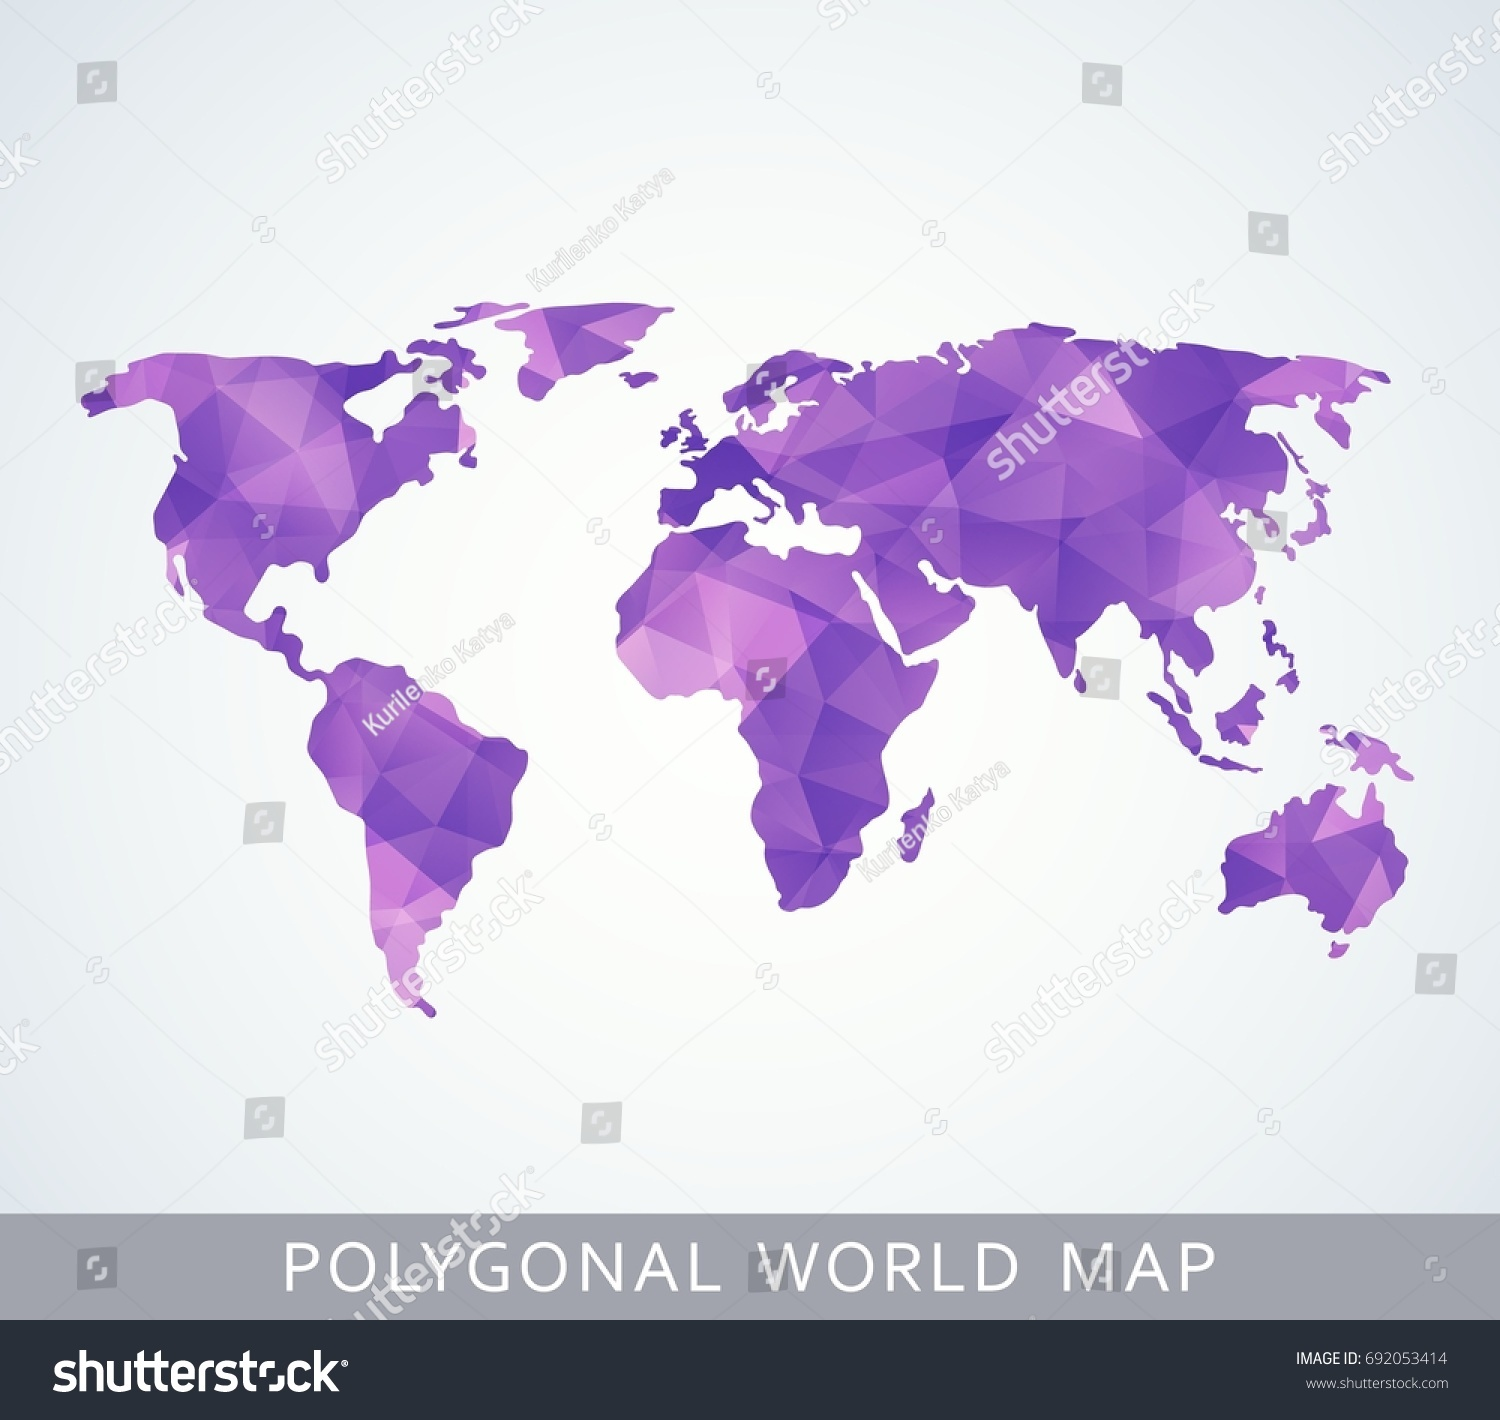 polygonal world map for presentation booklet website and other design projects